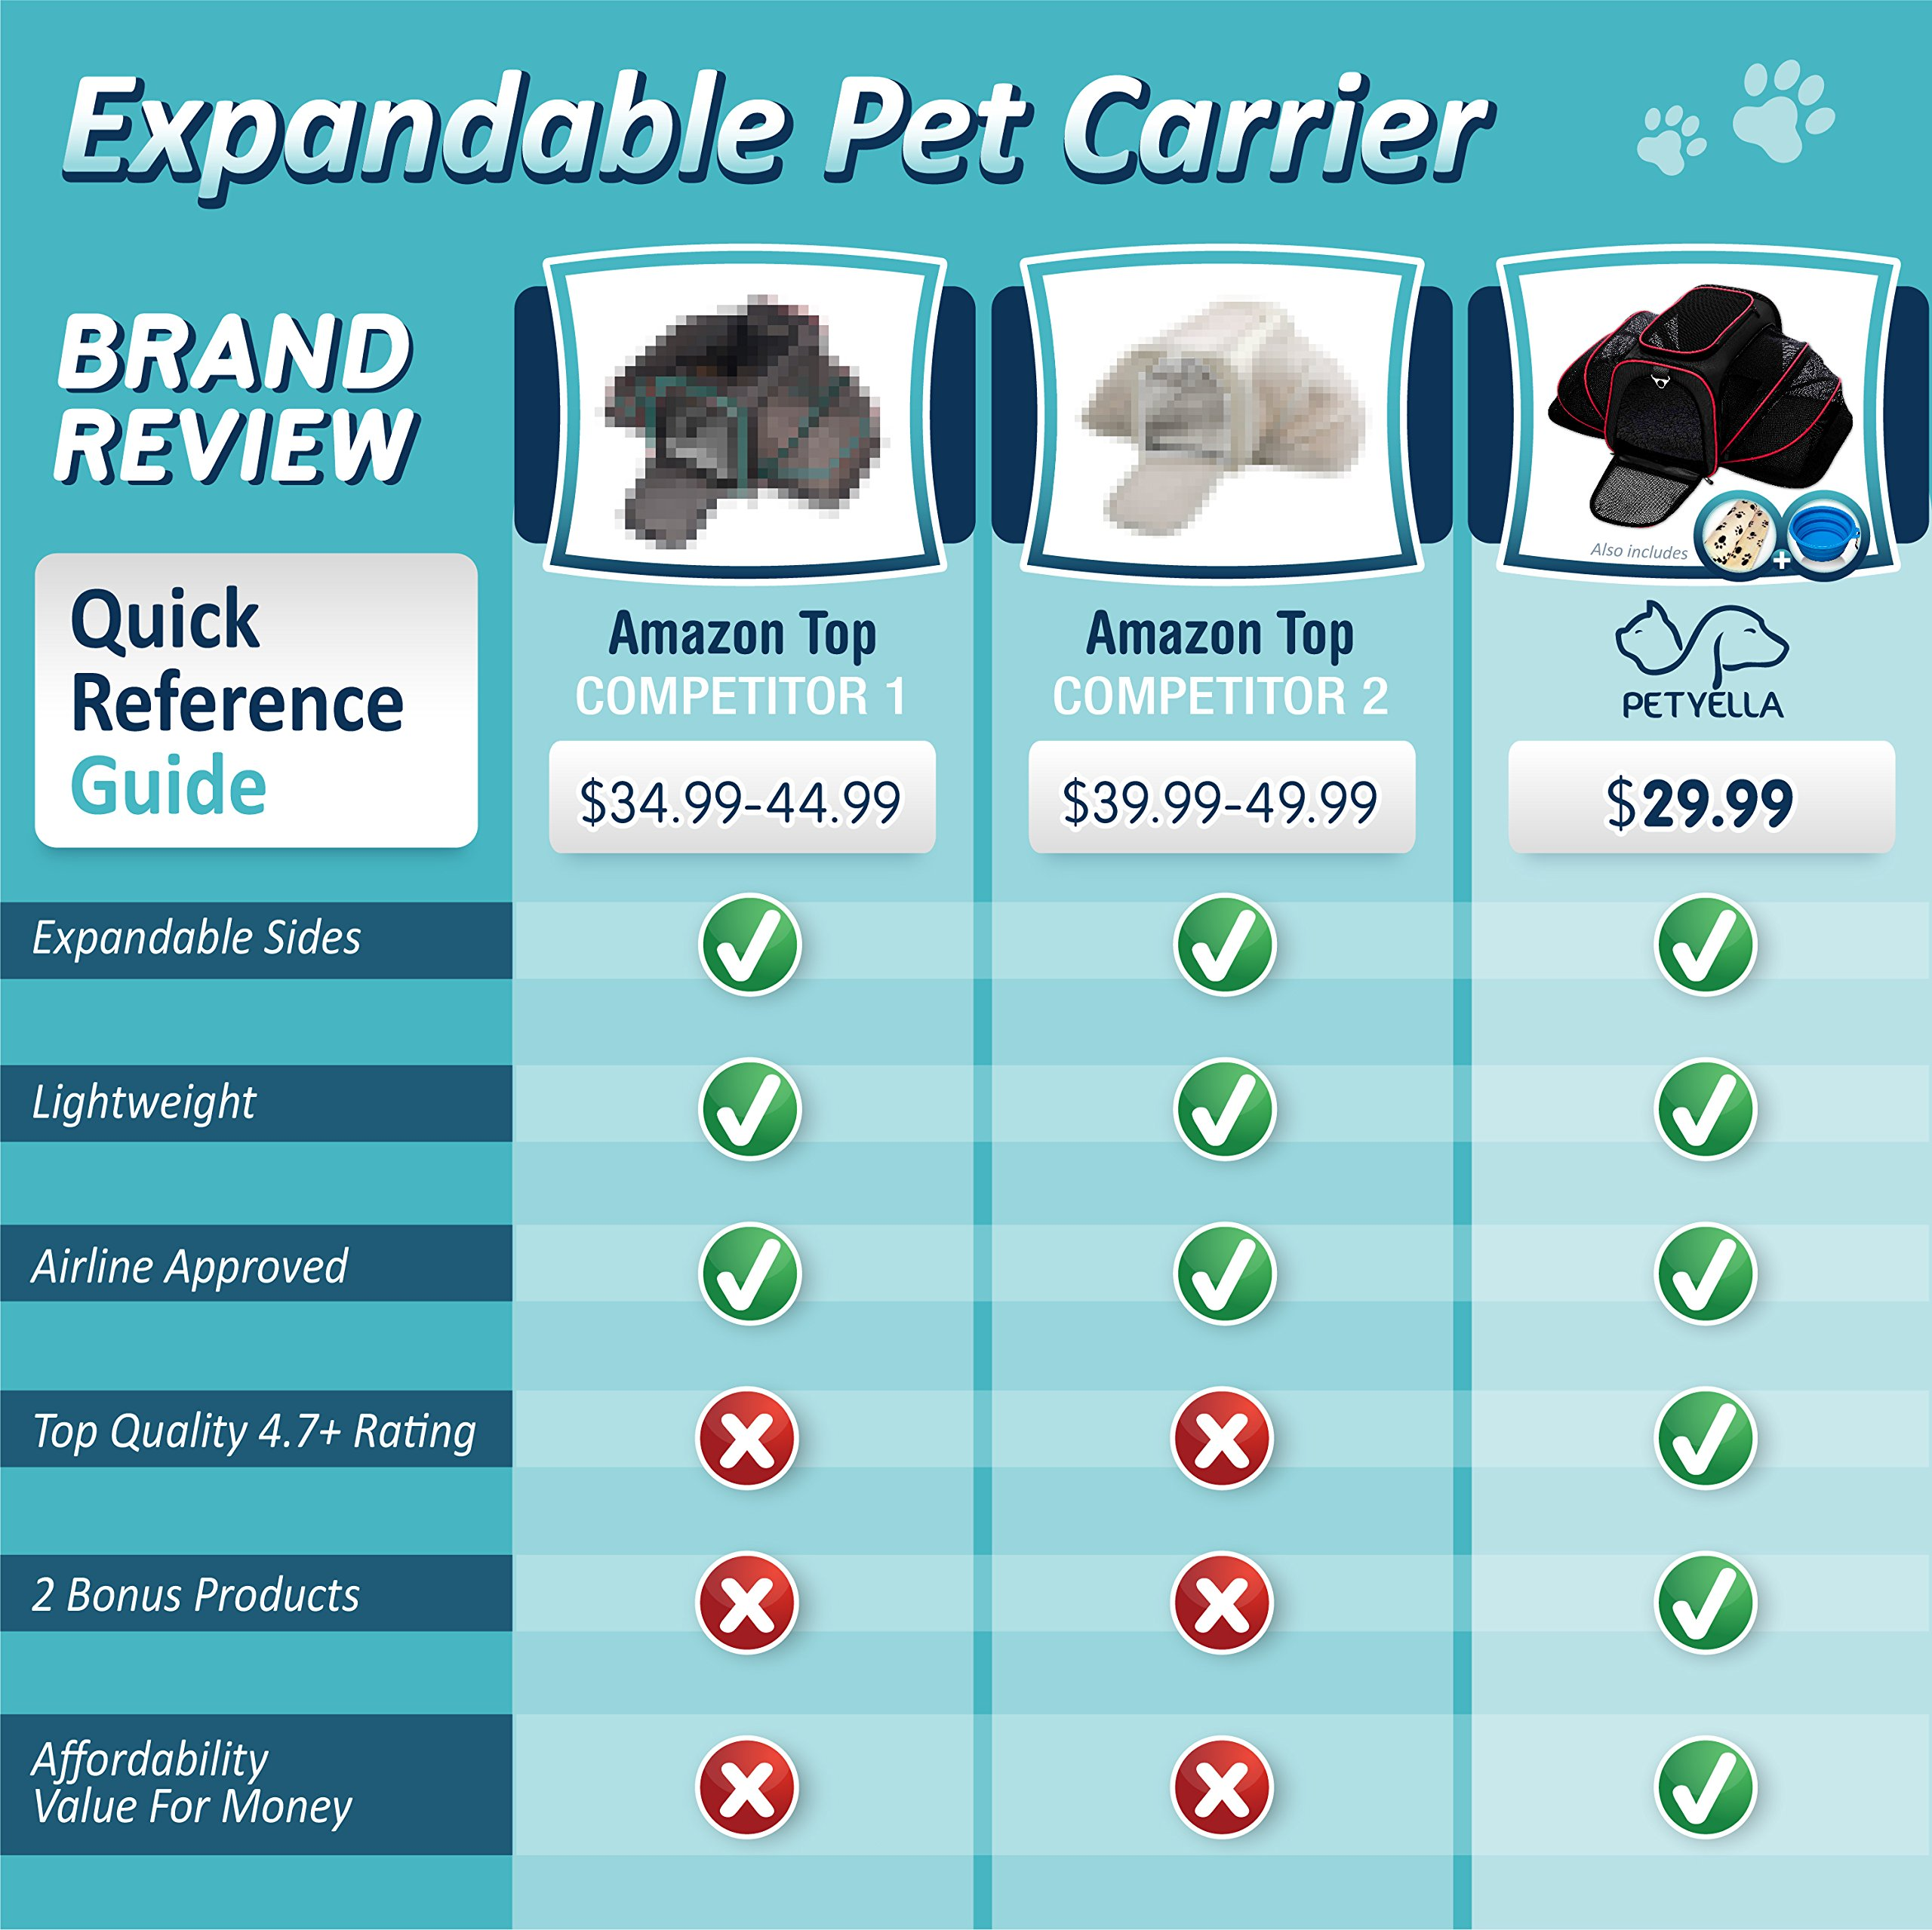 Petyella Cat Carrier Pet Carrier for Small Dogs and Cats Expandable Soft Sided Crate for Pet - Airline Approved Medium Kennel Travel Bag - 2.8 lbs Dog Carriers with Bonus Blanket and Bowl,Dark Brown by Petyella (Image #4)